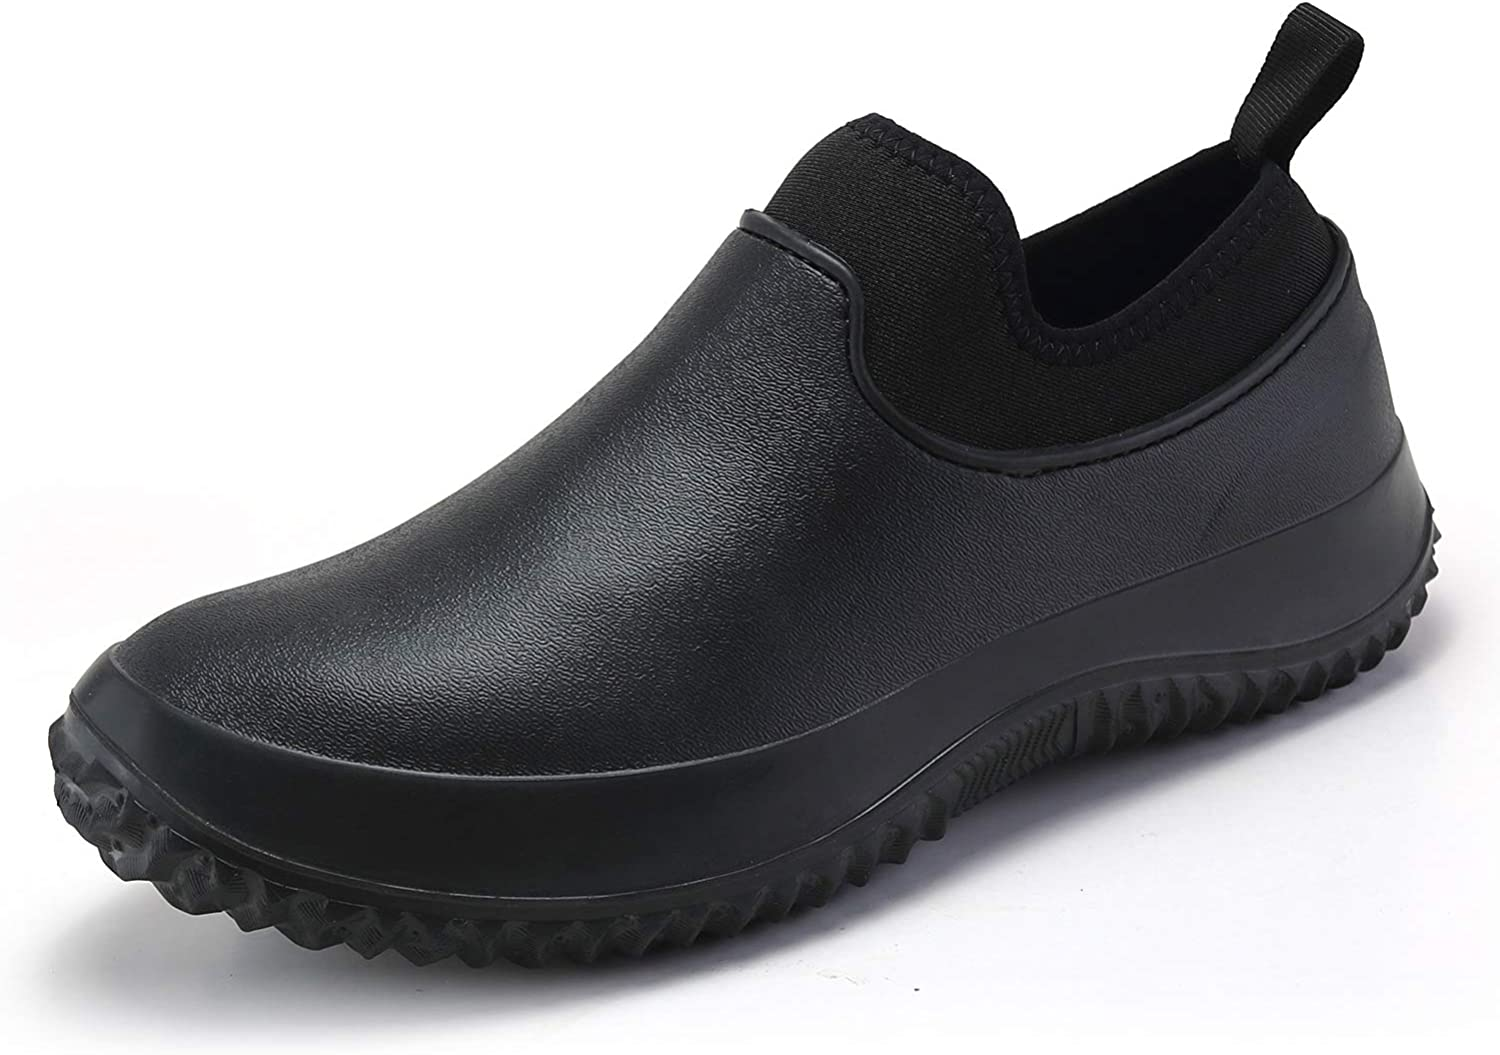 yuelvda Chef Dedication Shoes Water Rain Sales of SALE items from new works Kitchen Ser Food